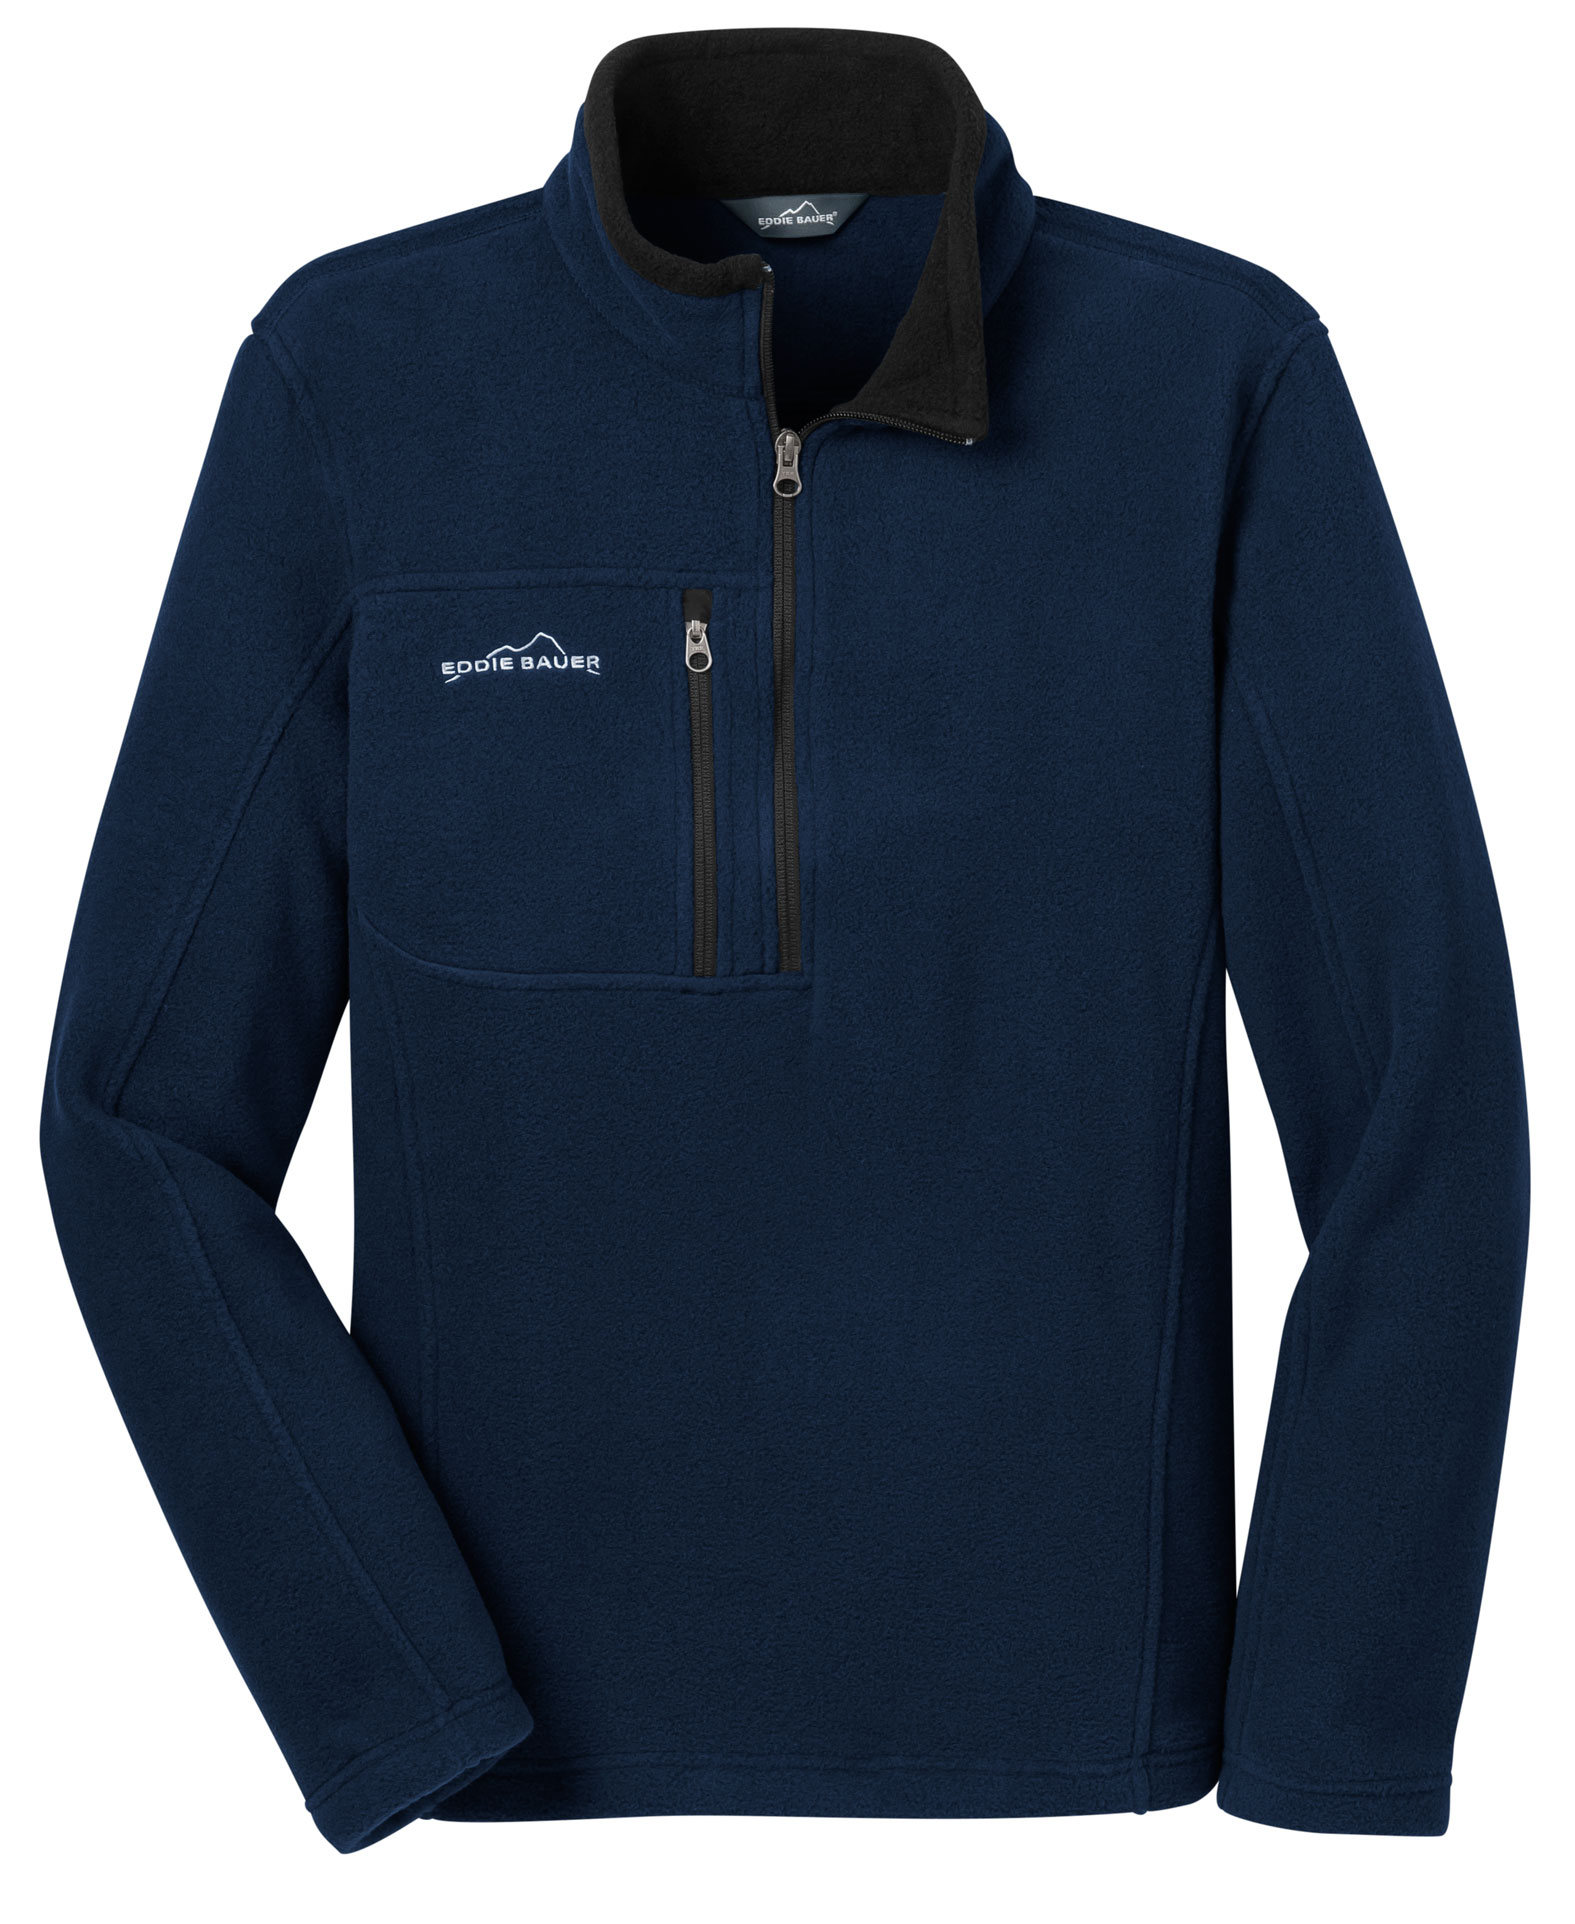 Eddie Bauer� - 1/4-Zip Fleece Pullover